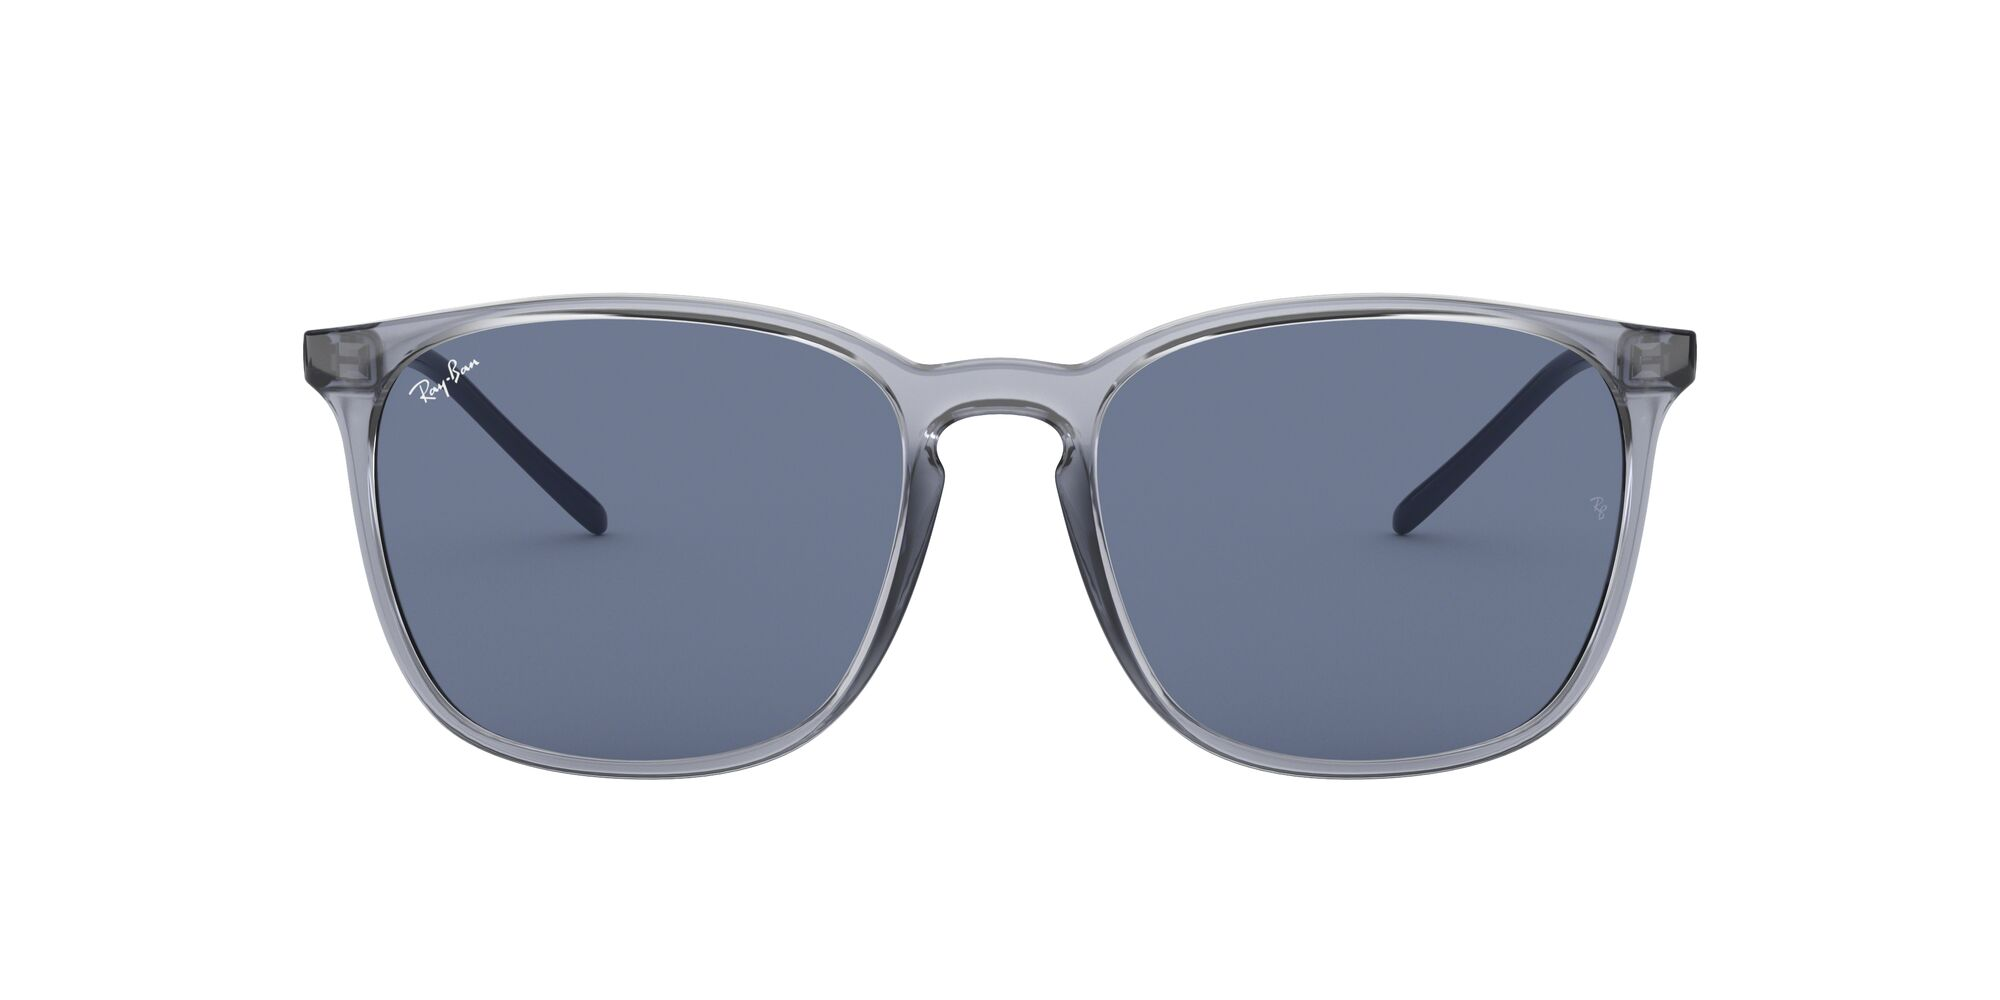 Front Ray-Ban Ray-Ban 0RB4387 639980 56/18 Blauw/Blauw